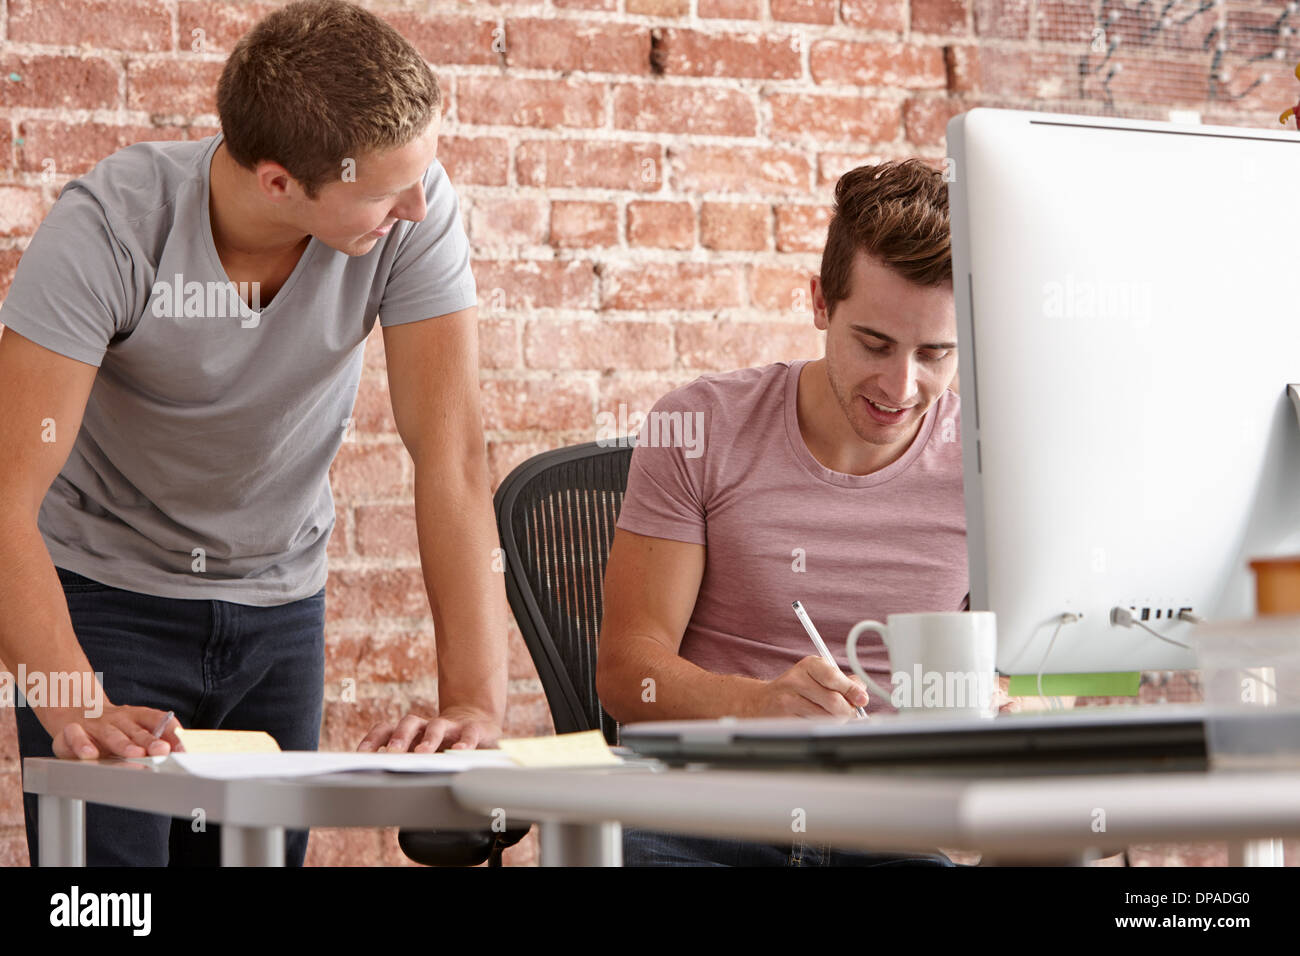 Young men talking at desk with computer - Stock Image